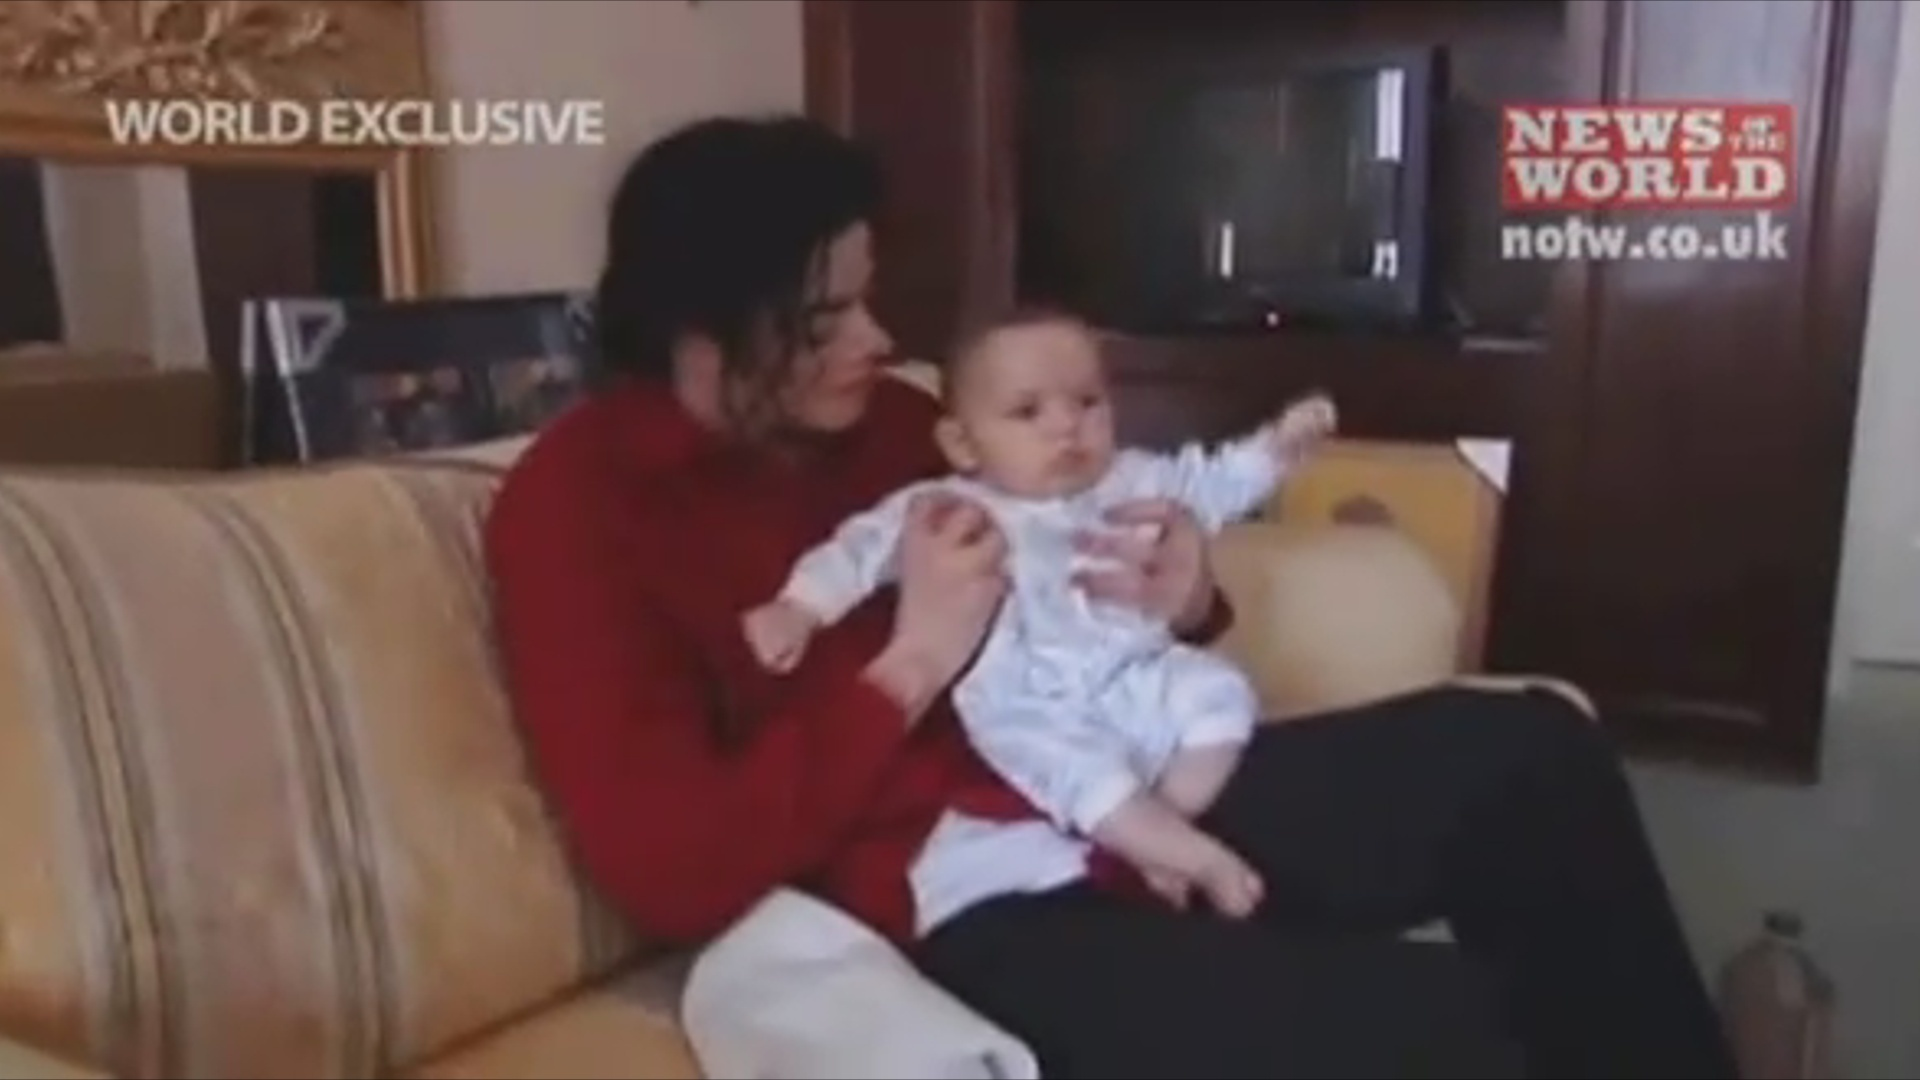 Prince puking as a baby - prince-michael-jackson